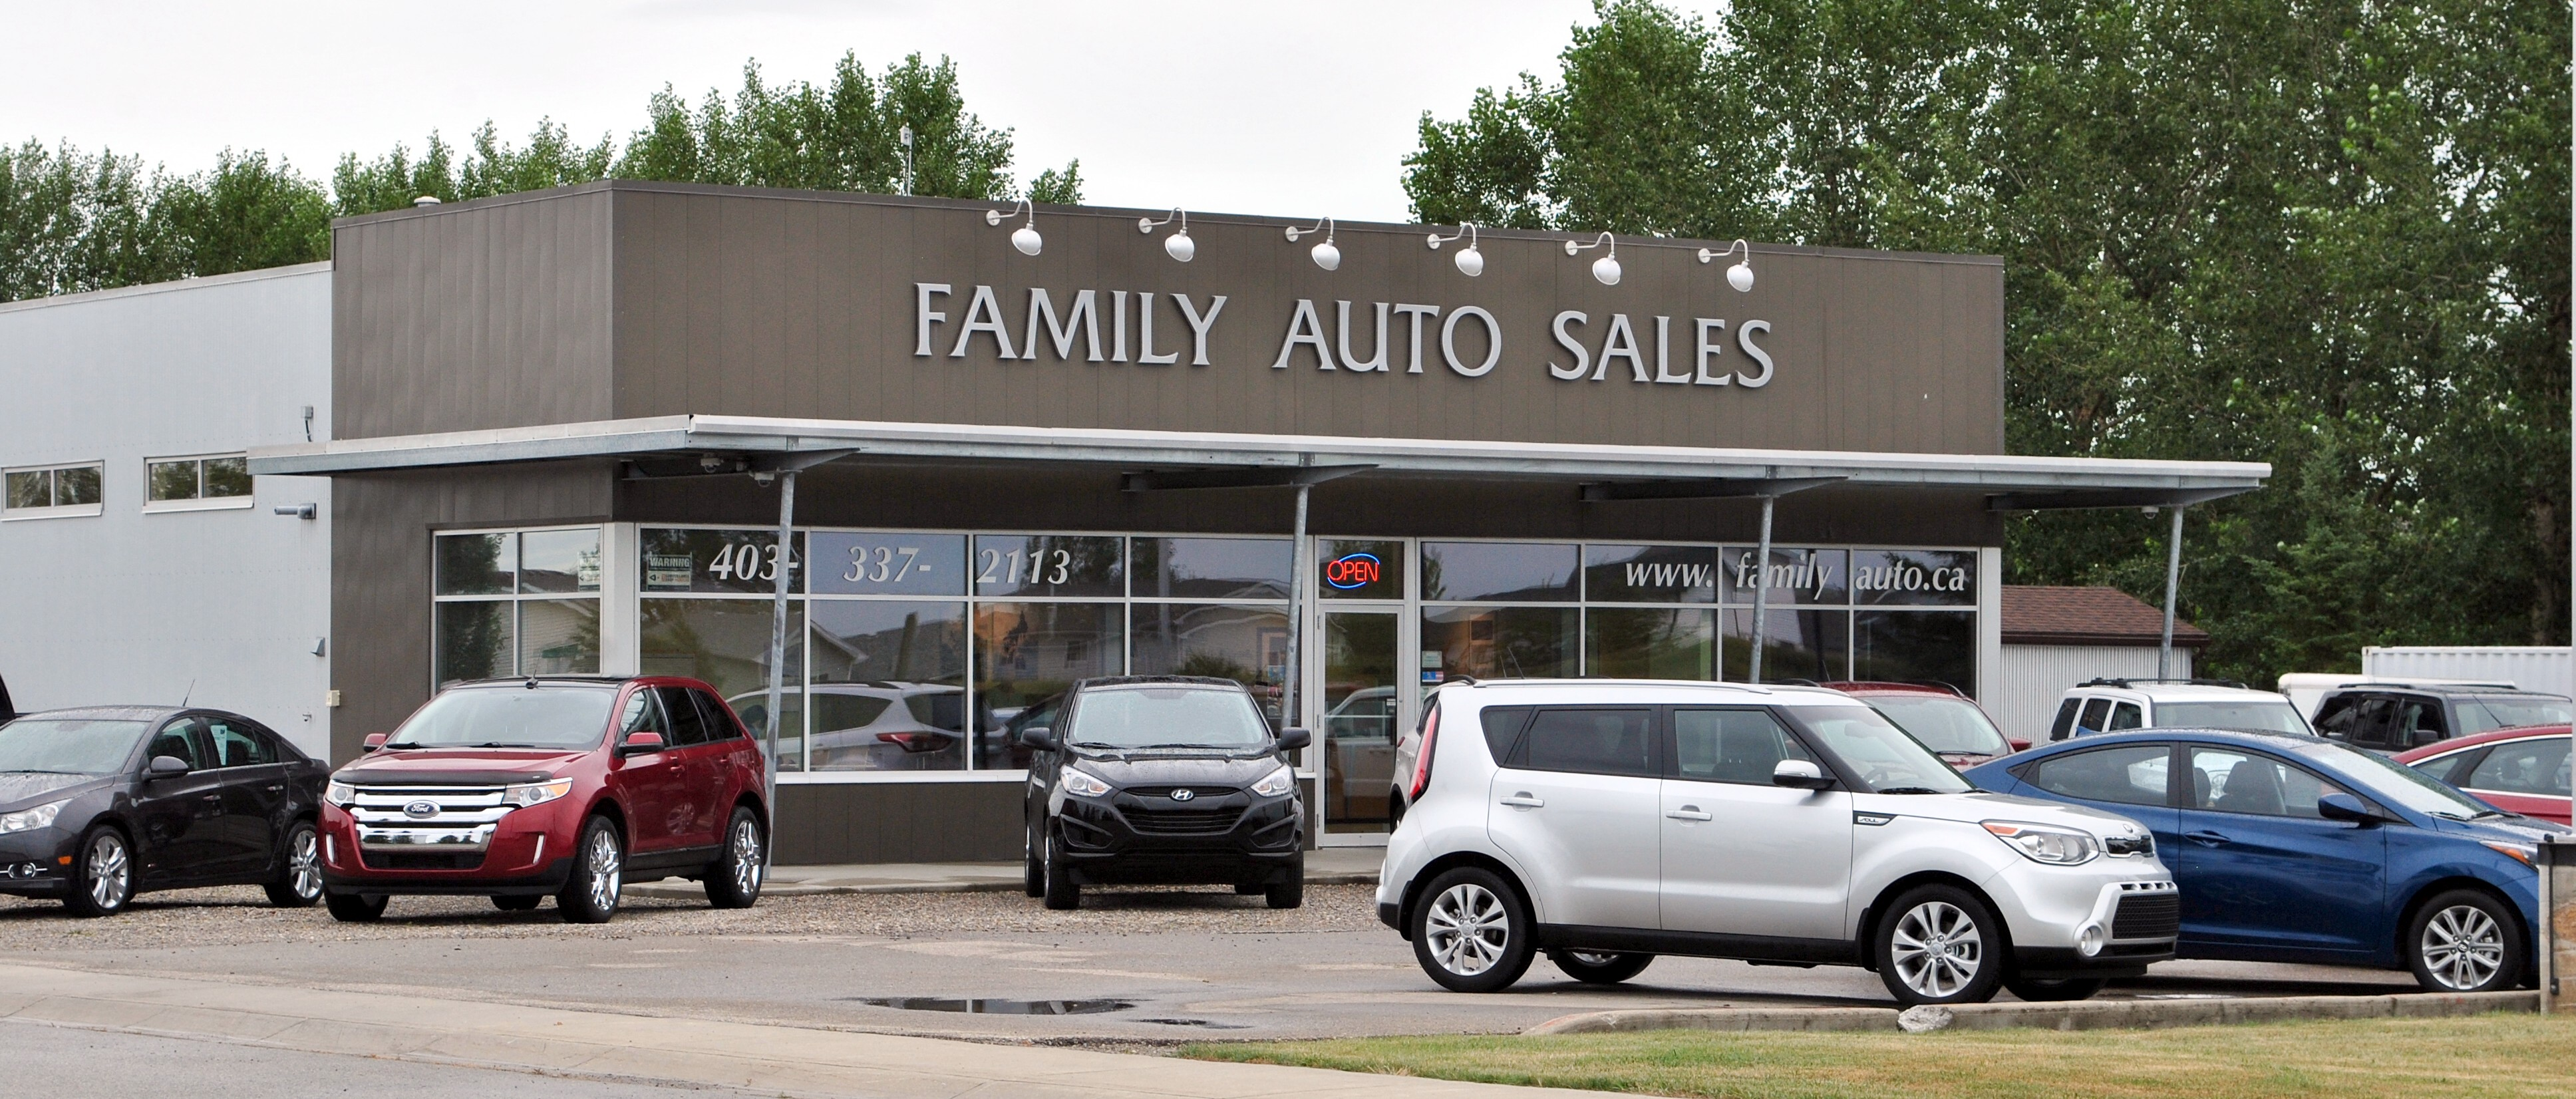 Family Auto Sales >> Family Auto Sales 2 Champion Rd Carstairs Ab T0m 0n0